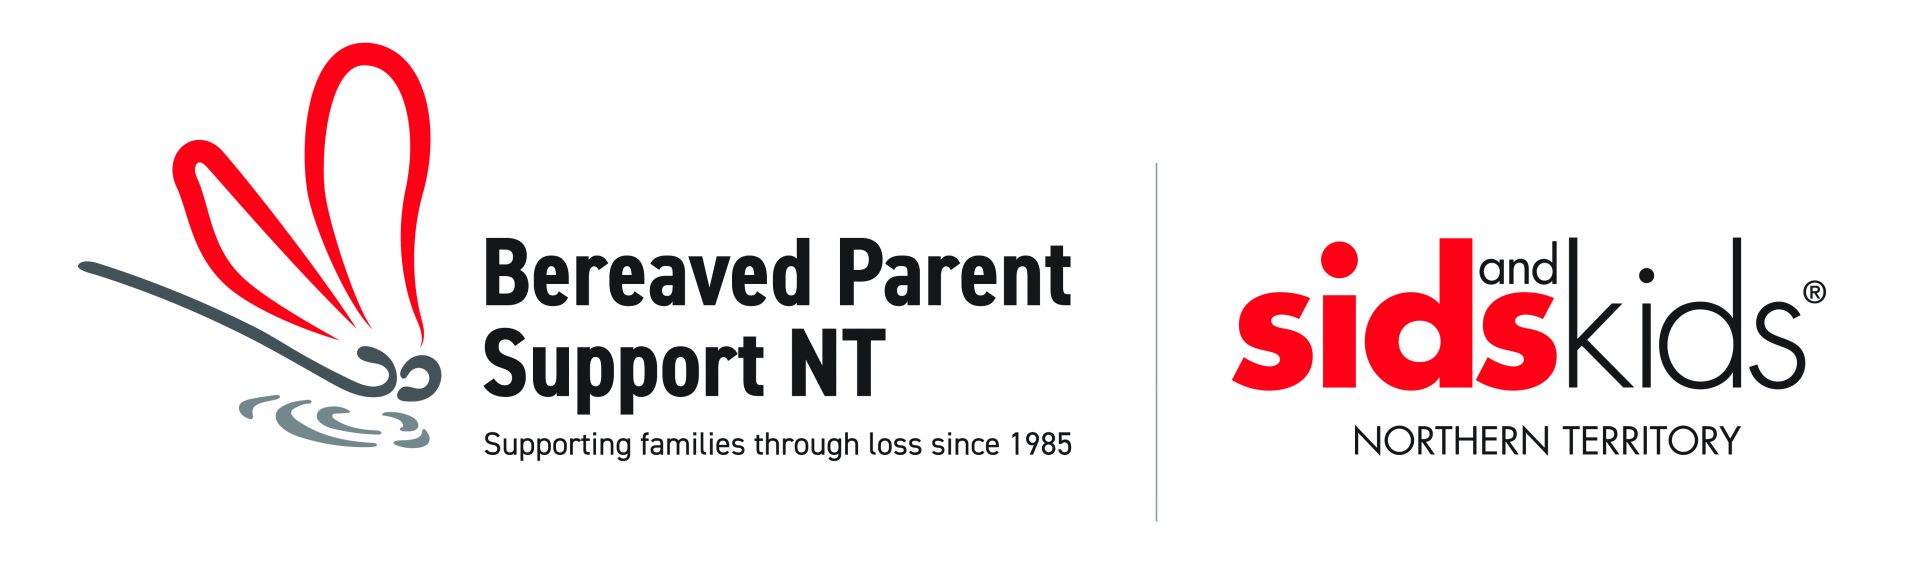 Bereaved Parent Support NT / Sids and Kids NT